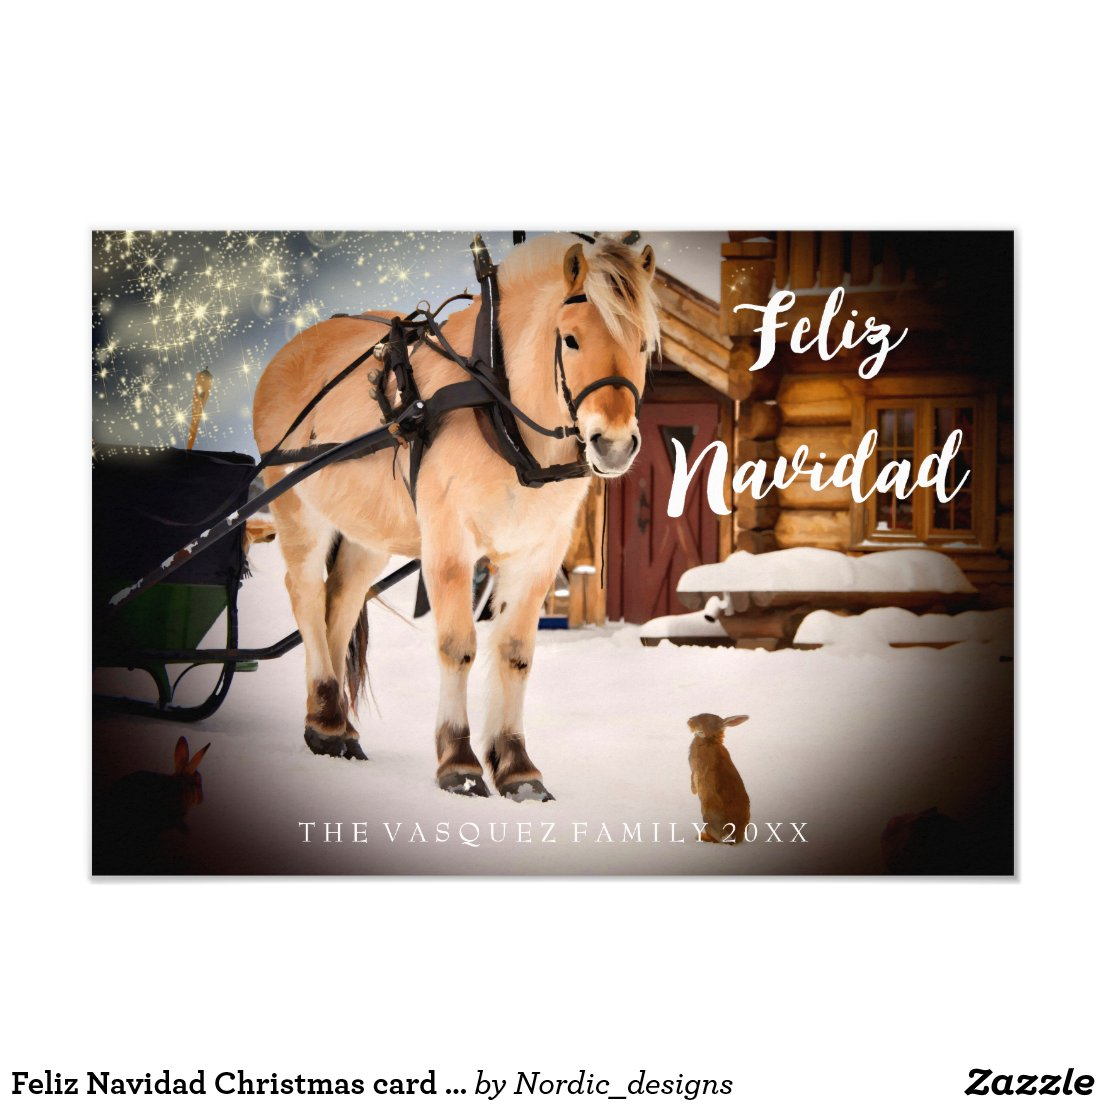 Feliz Navidad Christmas night at a farm with horse